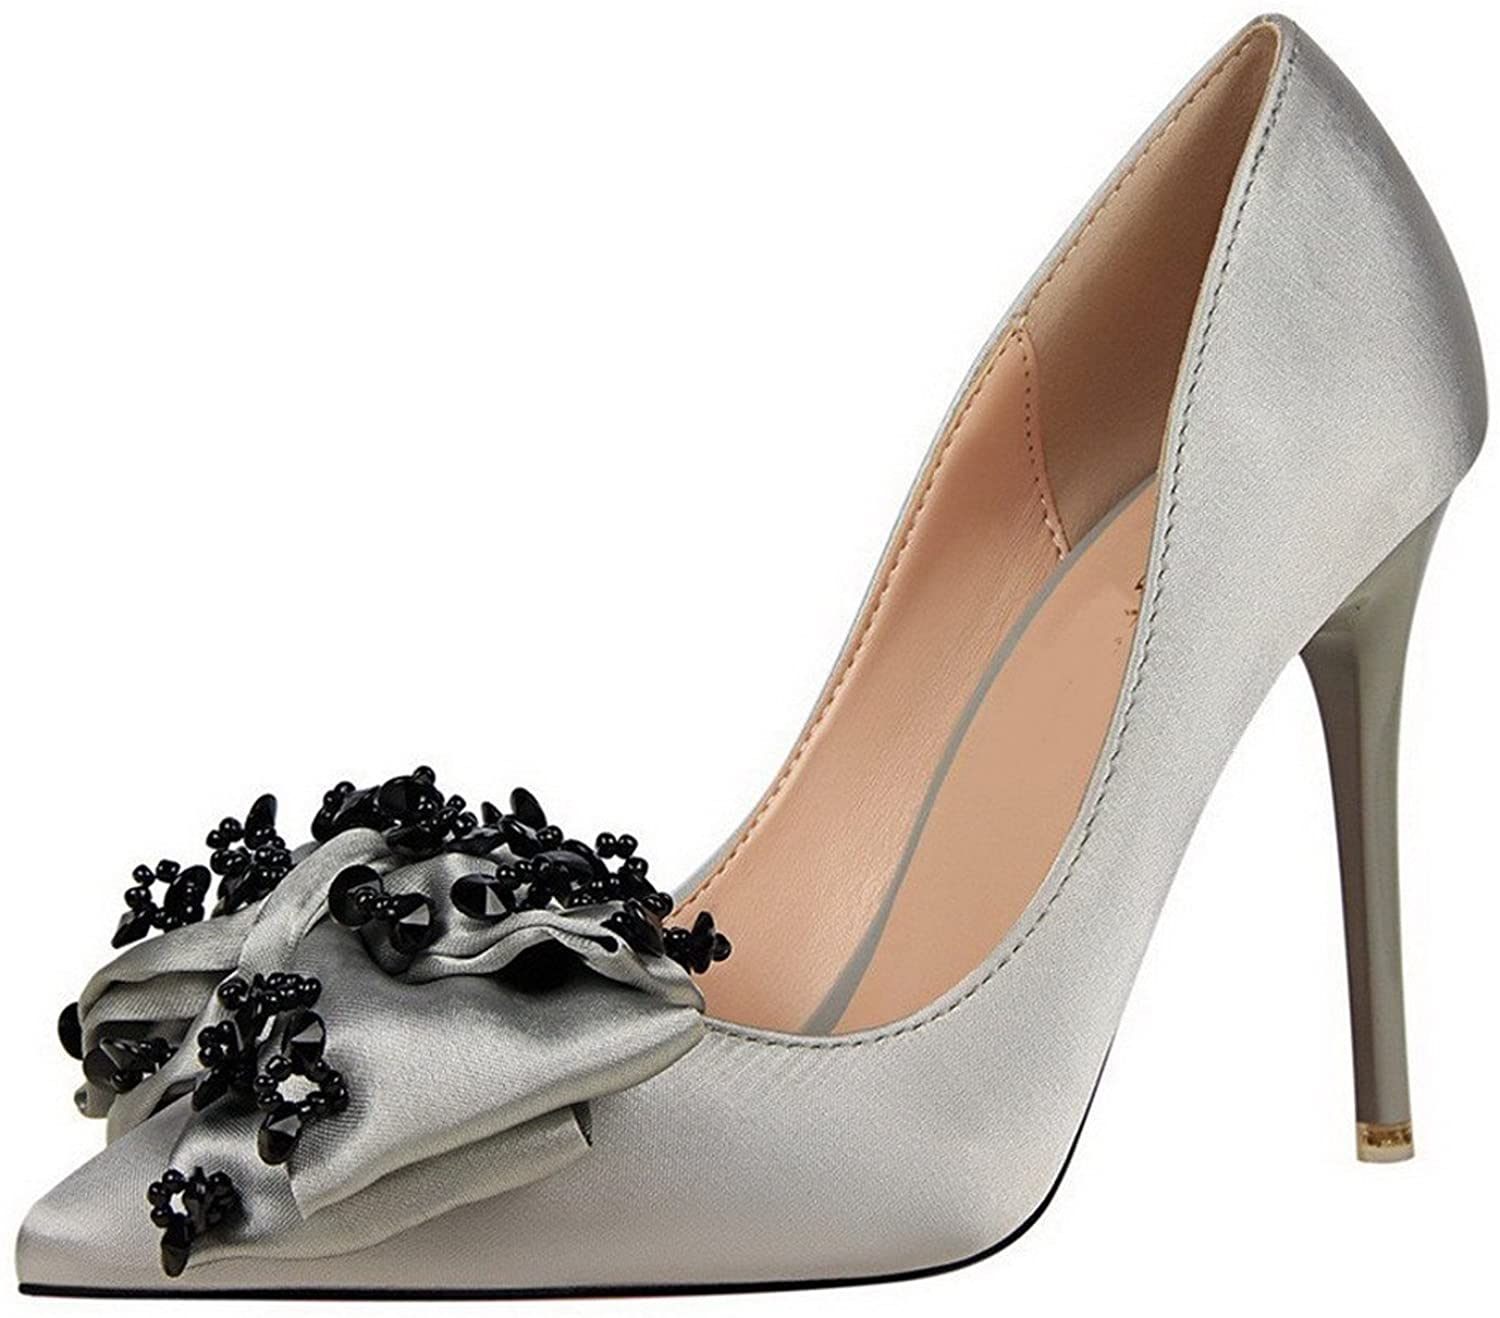 Three Second Fashion Simple Women's Silk Solid Spikes-Stilettos Pointed-Toe Pumps-Shoes with Bowknot